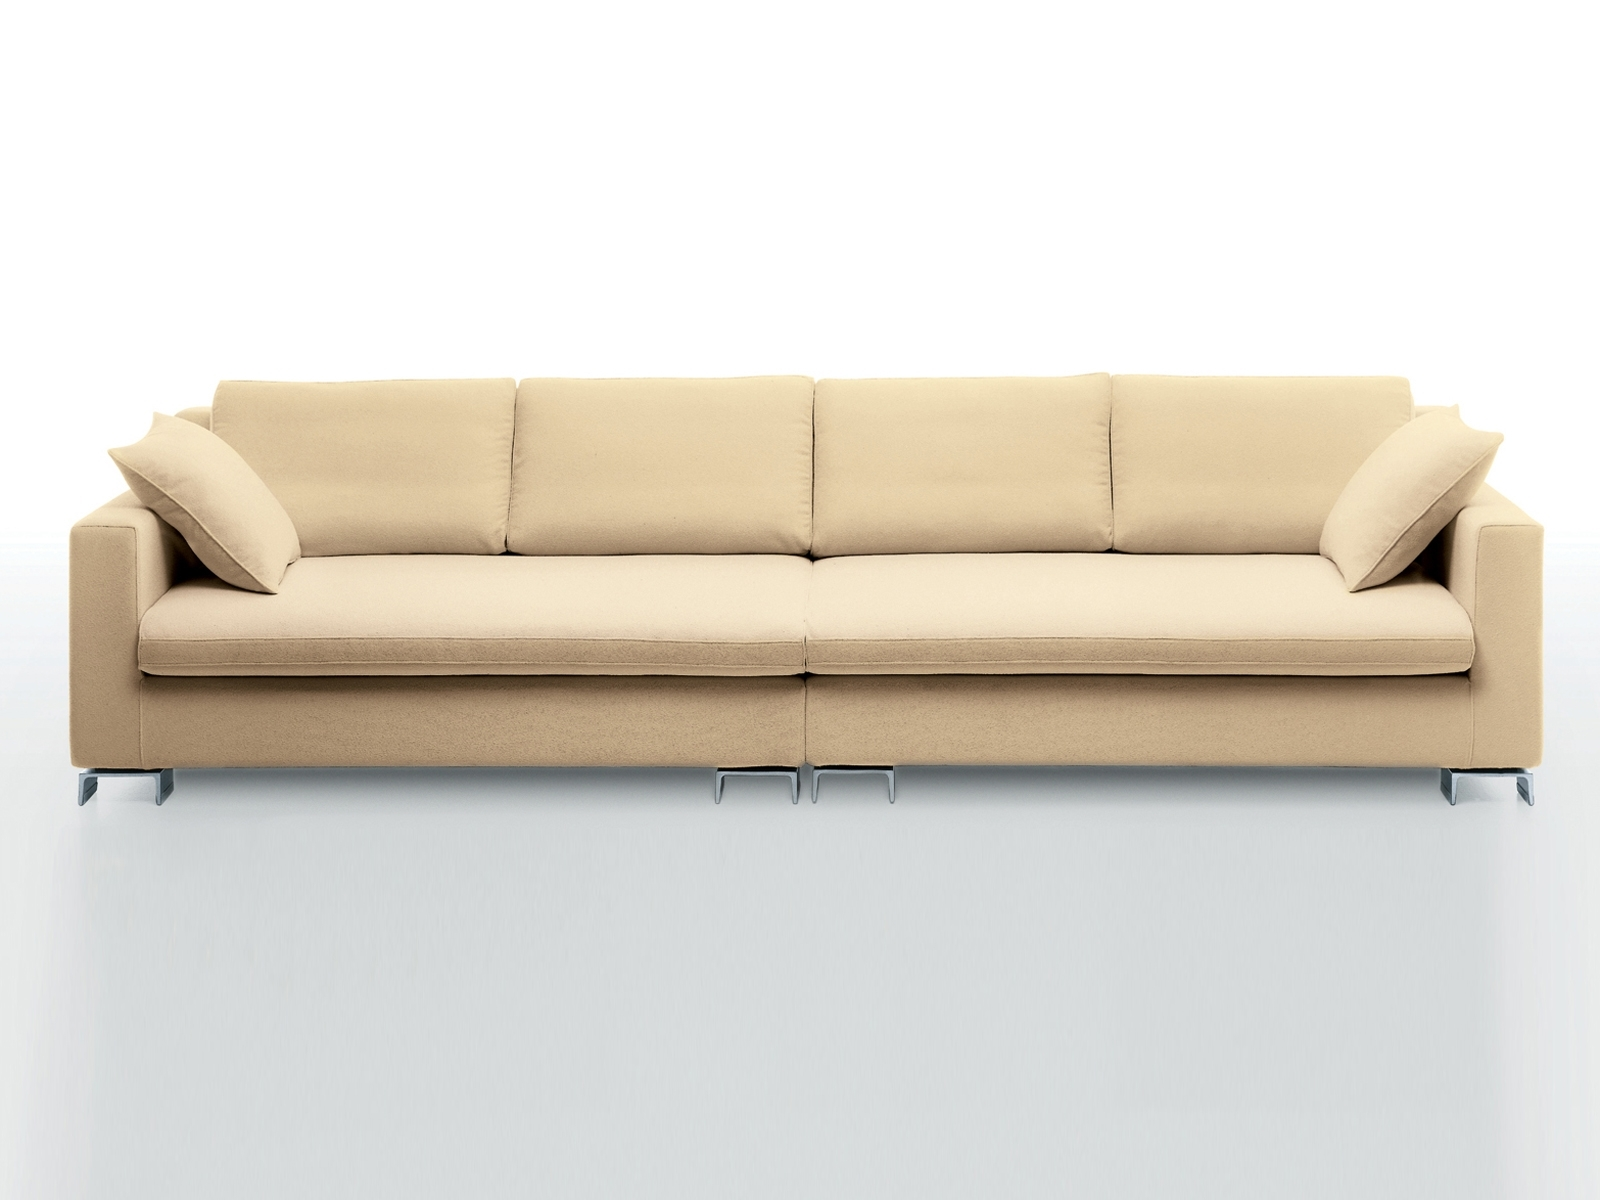 4 Seater Sofa For Large And Trendy Living Room Within Newest 4 Seater Sofas (Gallery 12 of 15)